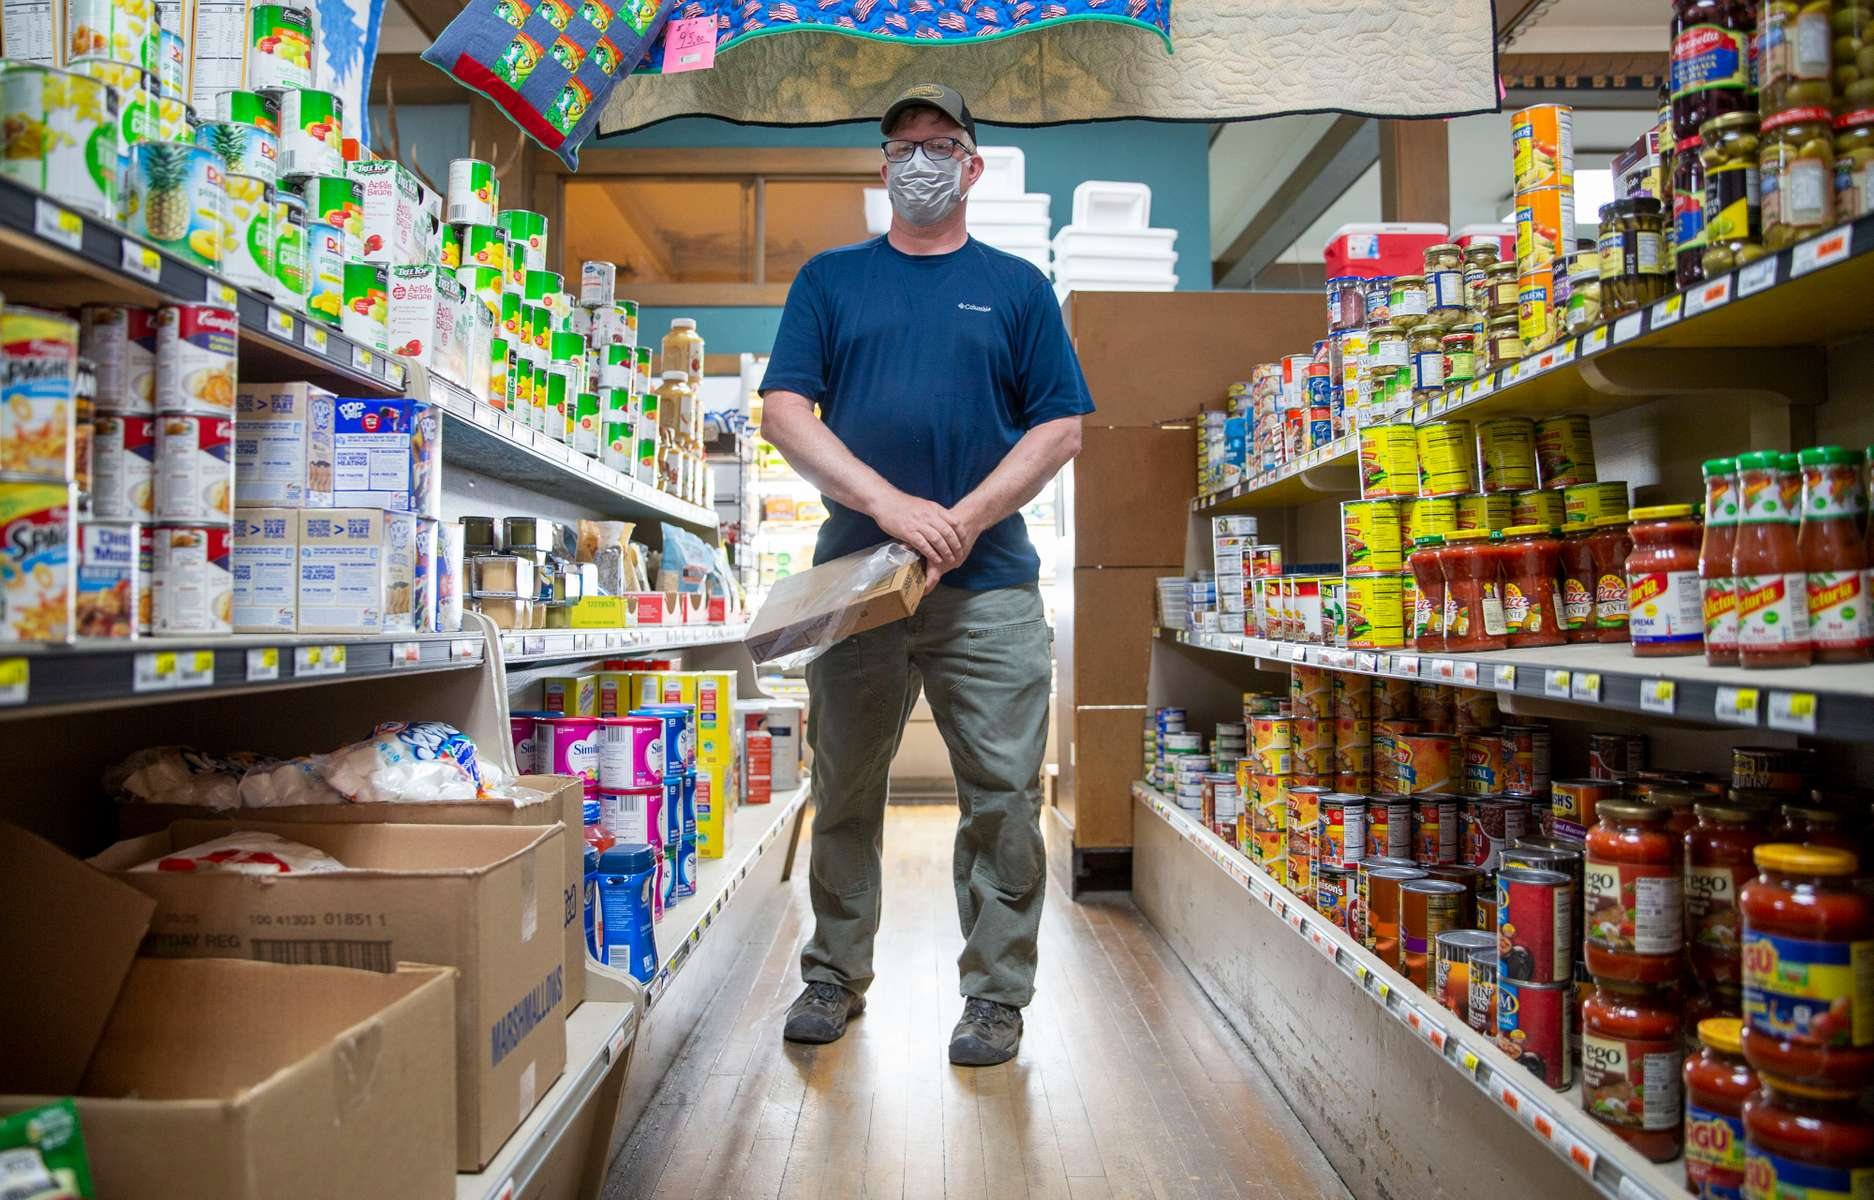 Fossil Mercantile owner Joe McNeil at his store on September 4, 2020, in Fossil, Oregon. McNeill was on the forefront of the mask-wearing policy in Wheeler County. He had his employees wearing masks before it was mandated and also had a implemented a required mask policy for customers.